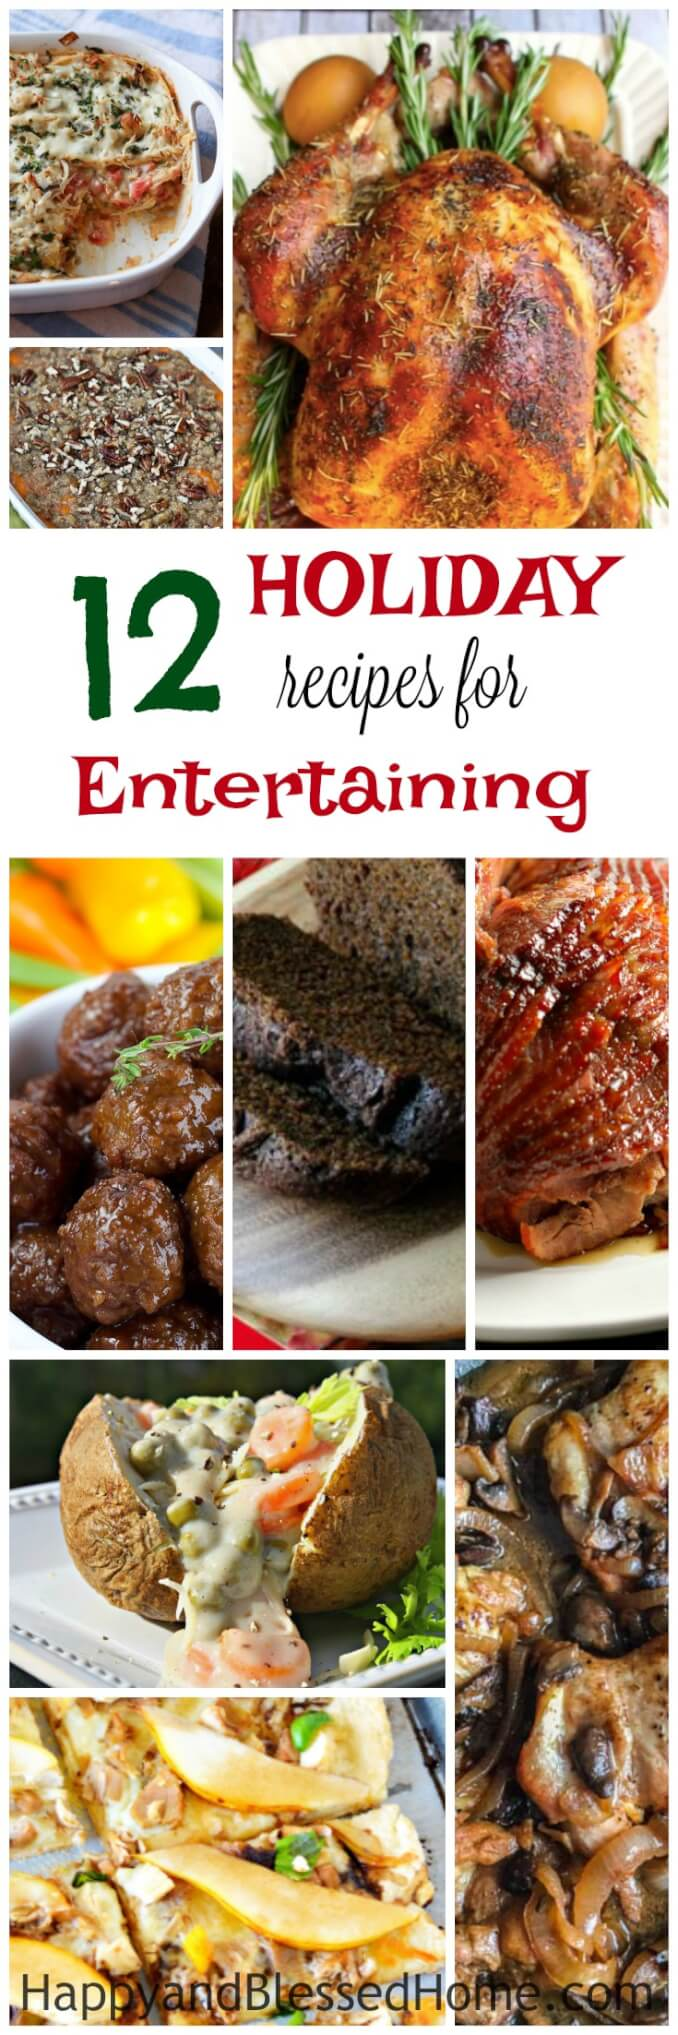 12 Holiday Recipes for Easy Entertaining includes crowd favorites like crockpot meatballs, honey glazed ham, chicken with mushrooms and more.